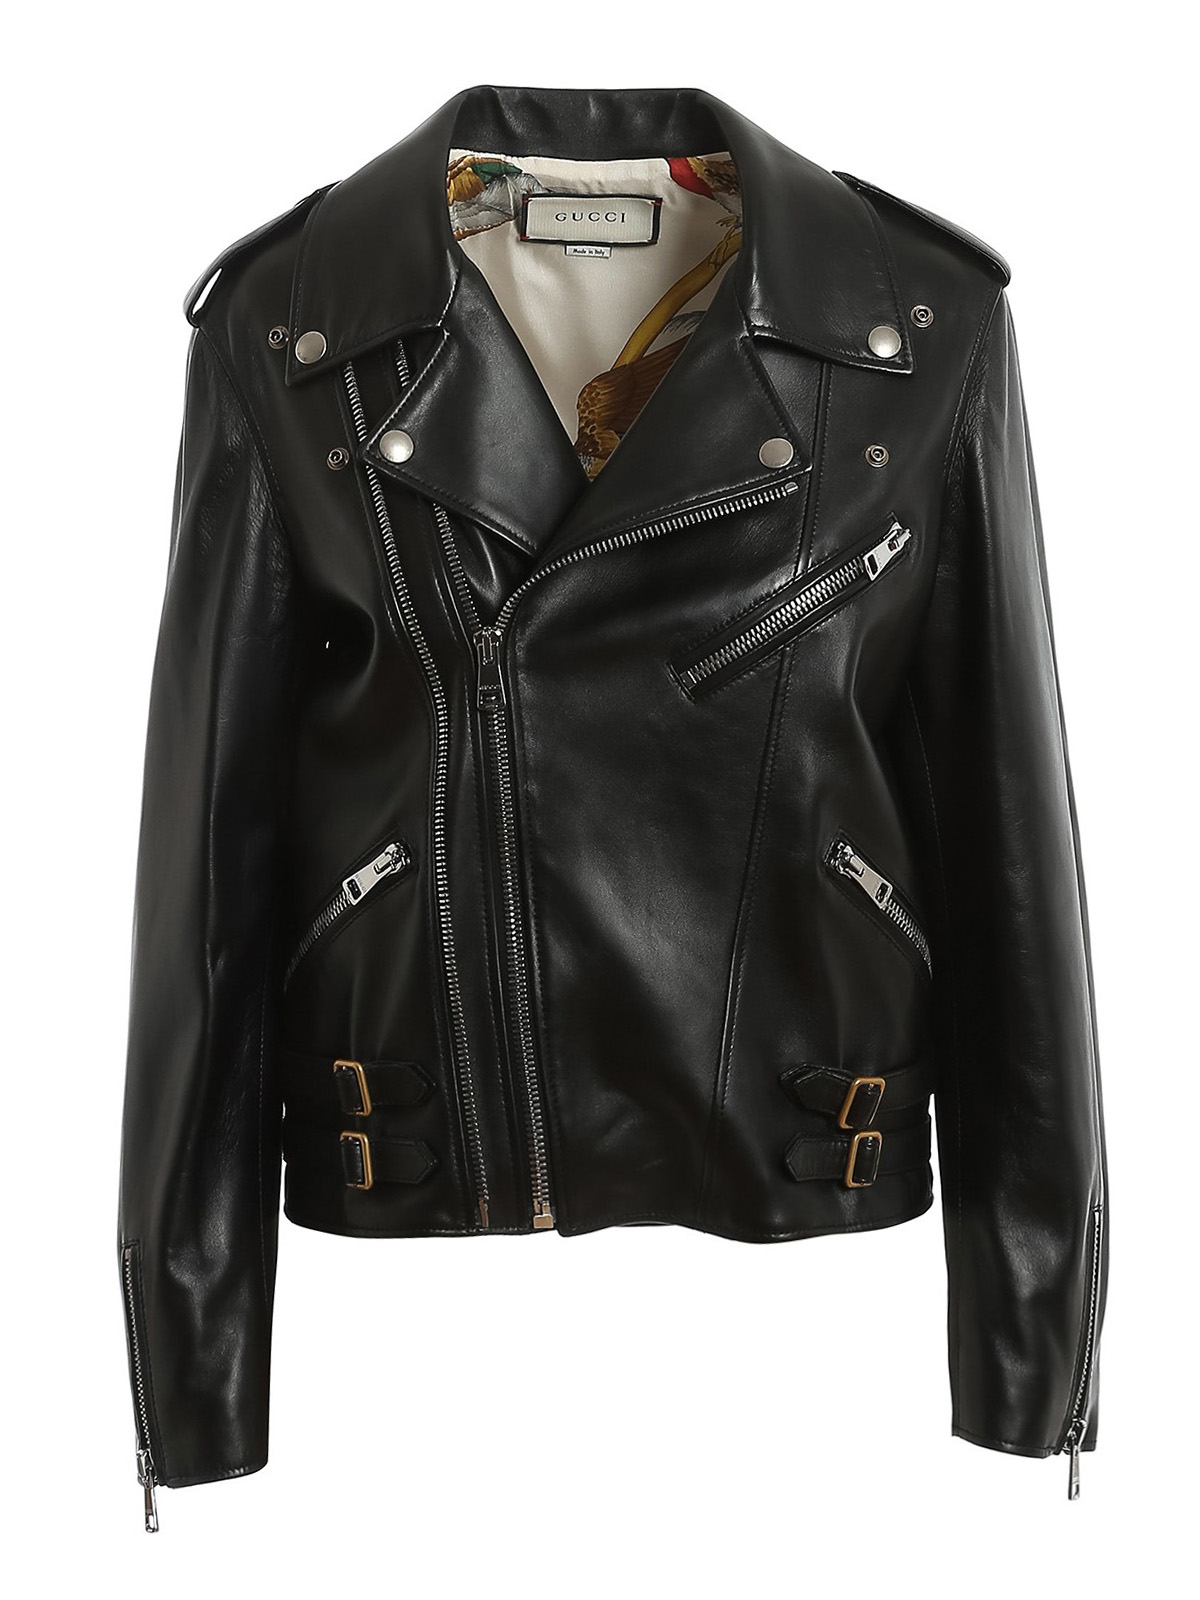 GUCCI PLONGE LEATHER BIKER JACKET